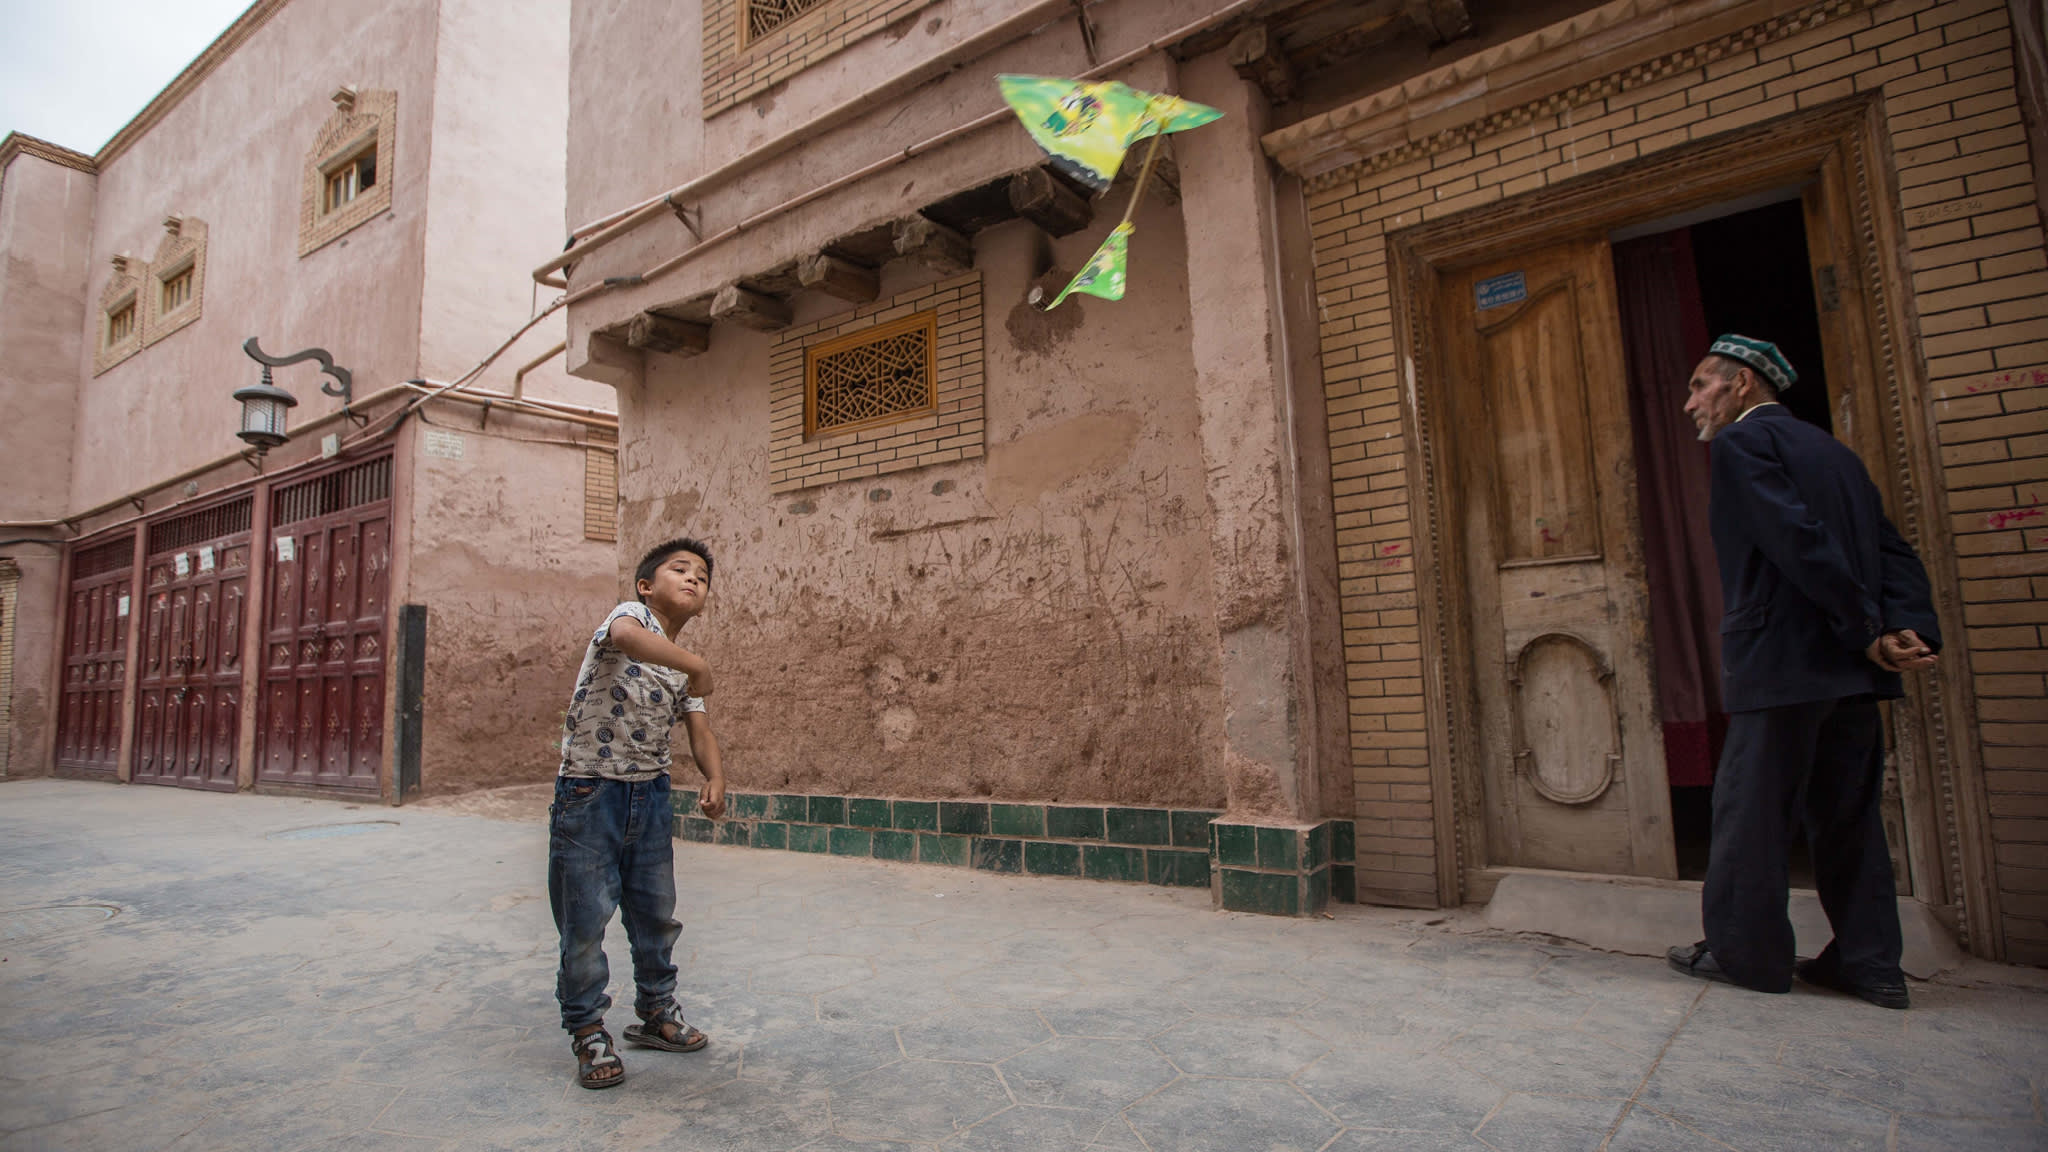 Crackdown in Xinjiang: Where have all the people gone?